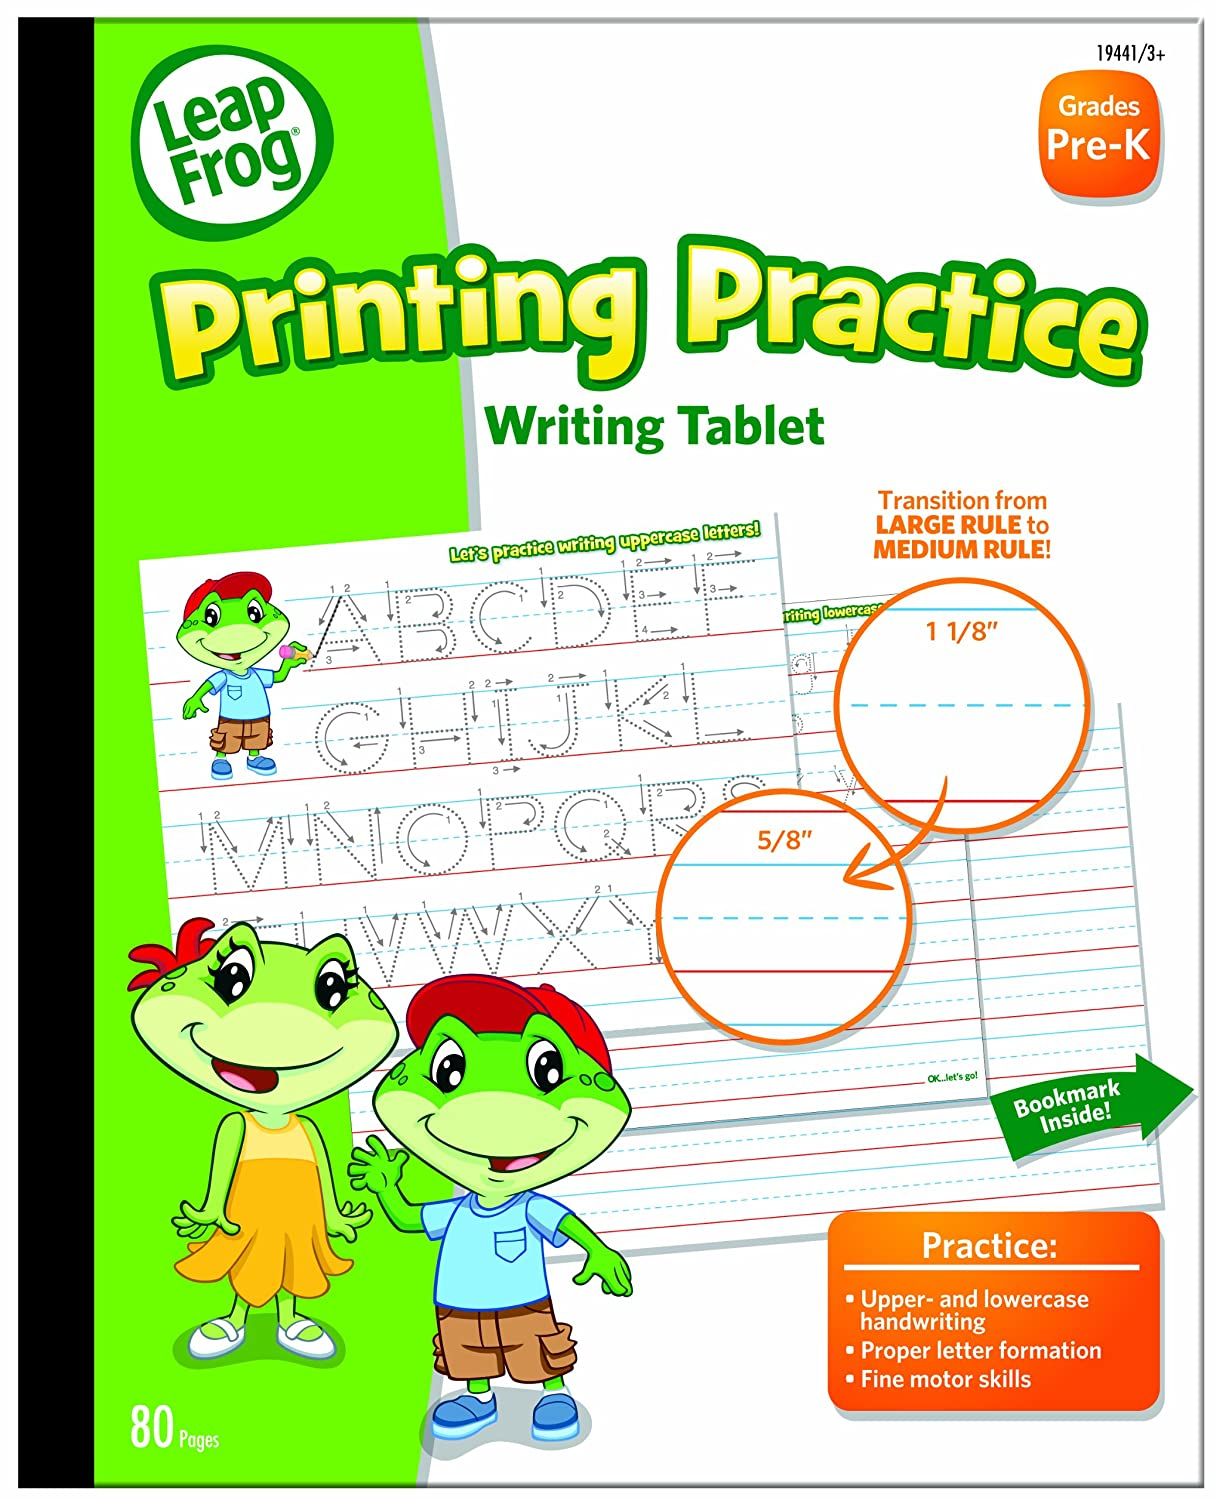 Amazon.com: LeapFrog Printing Practice Writing Tablet with Ruled ...